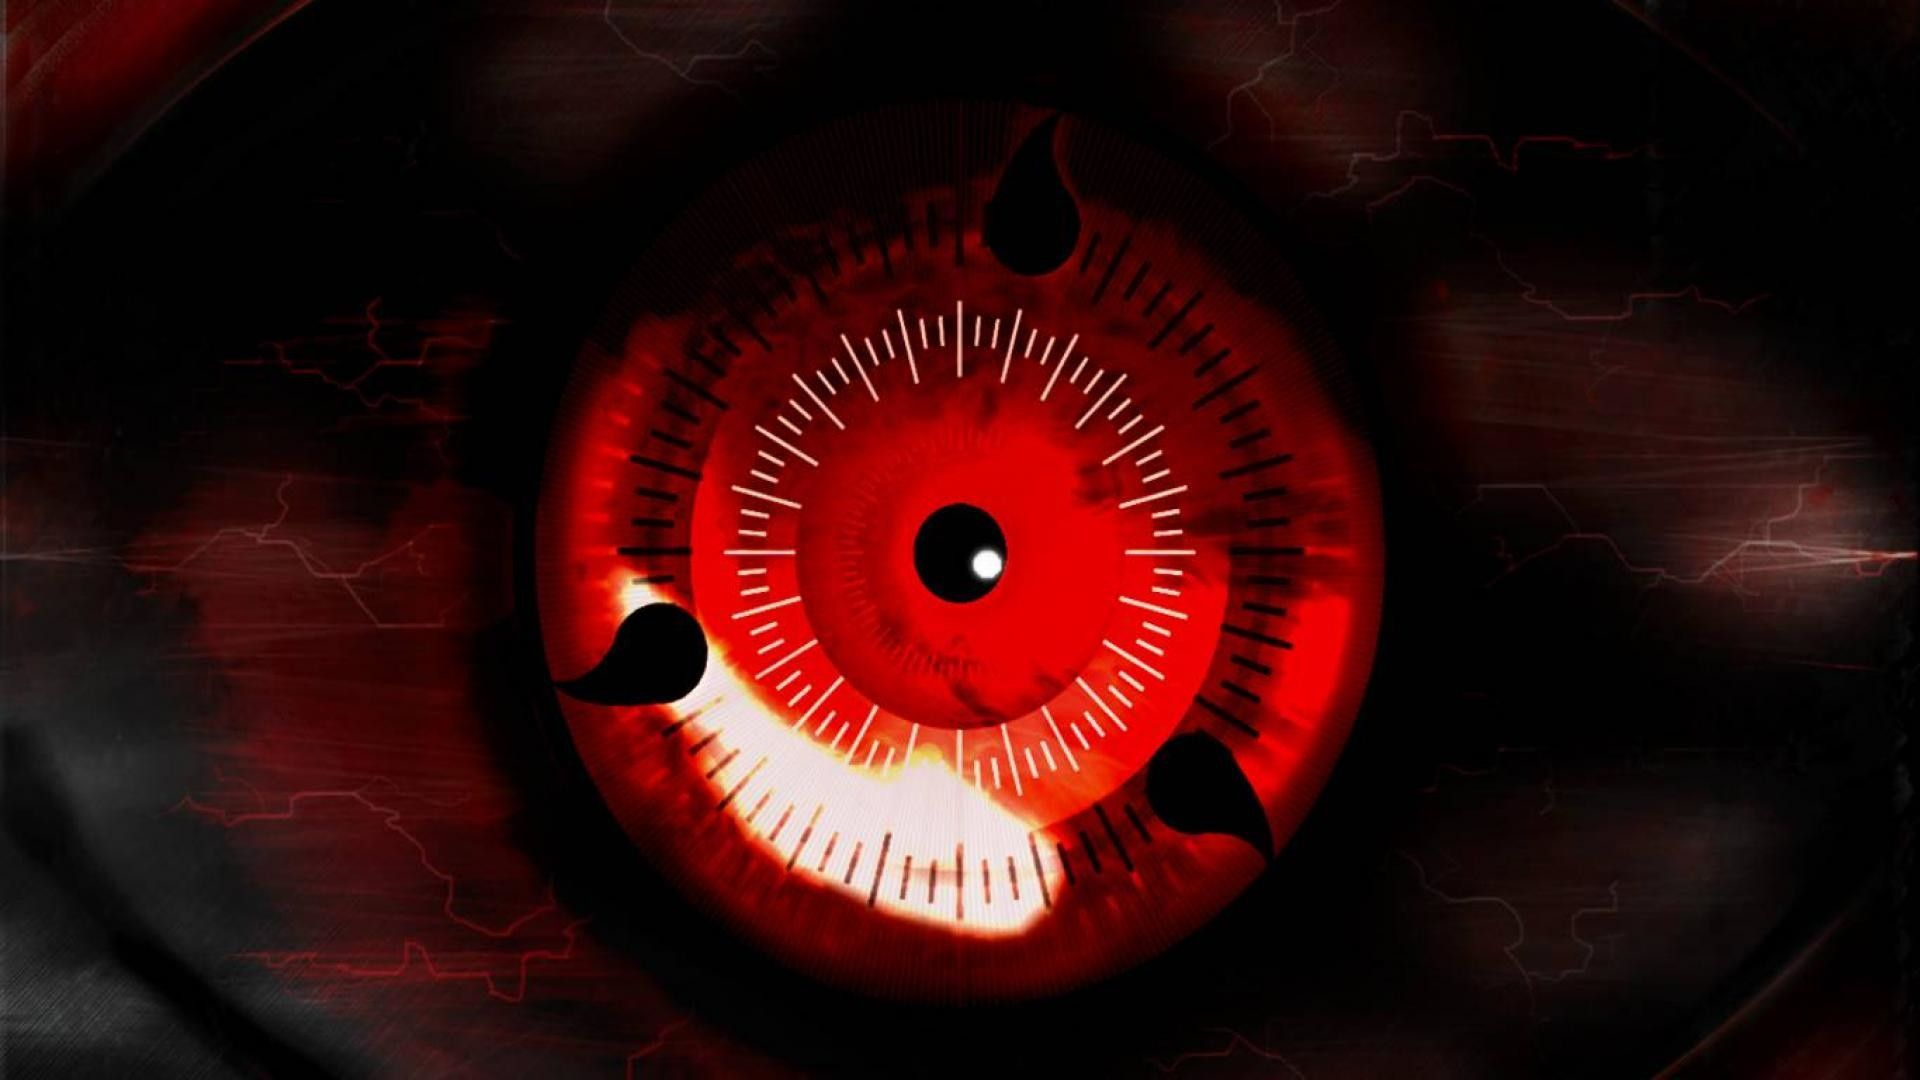 Naruto Sharingan Wallpapers Top Free Naruto Sharingan